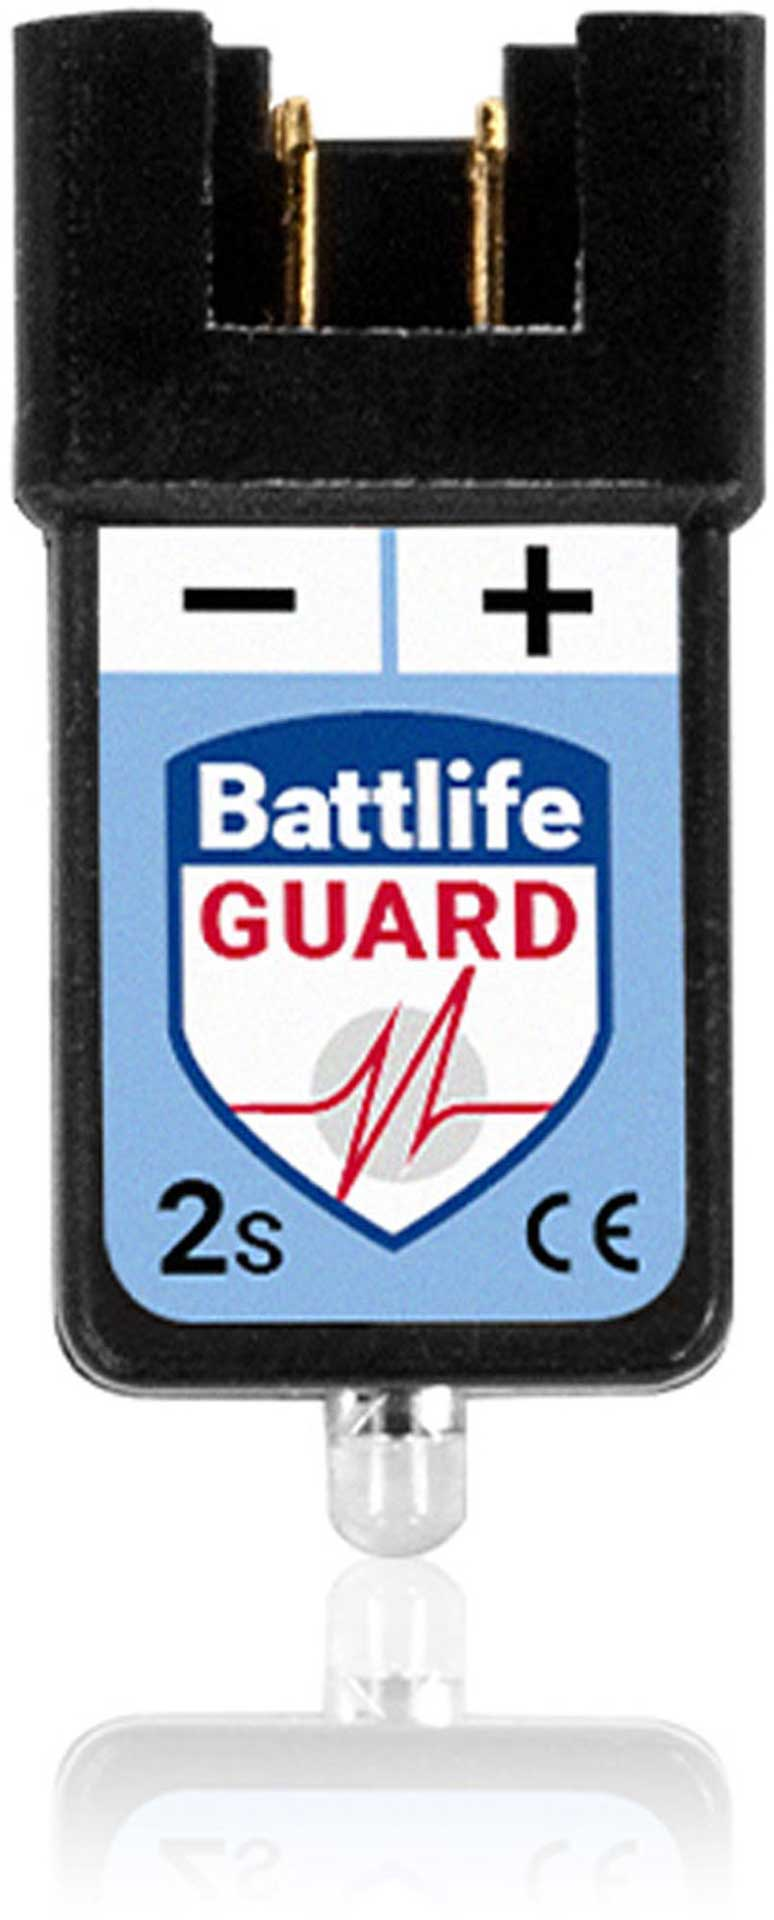 POWERBOX SYSTEMS BATTLIFE GUARD 2S